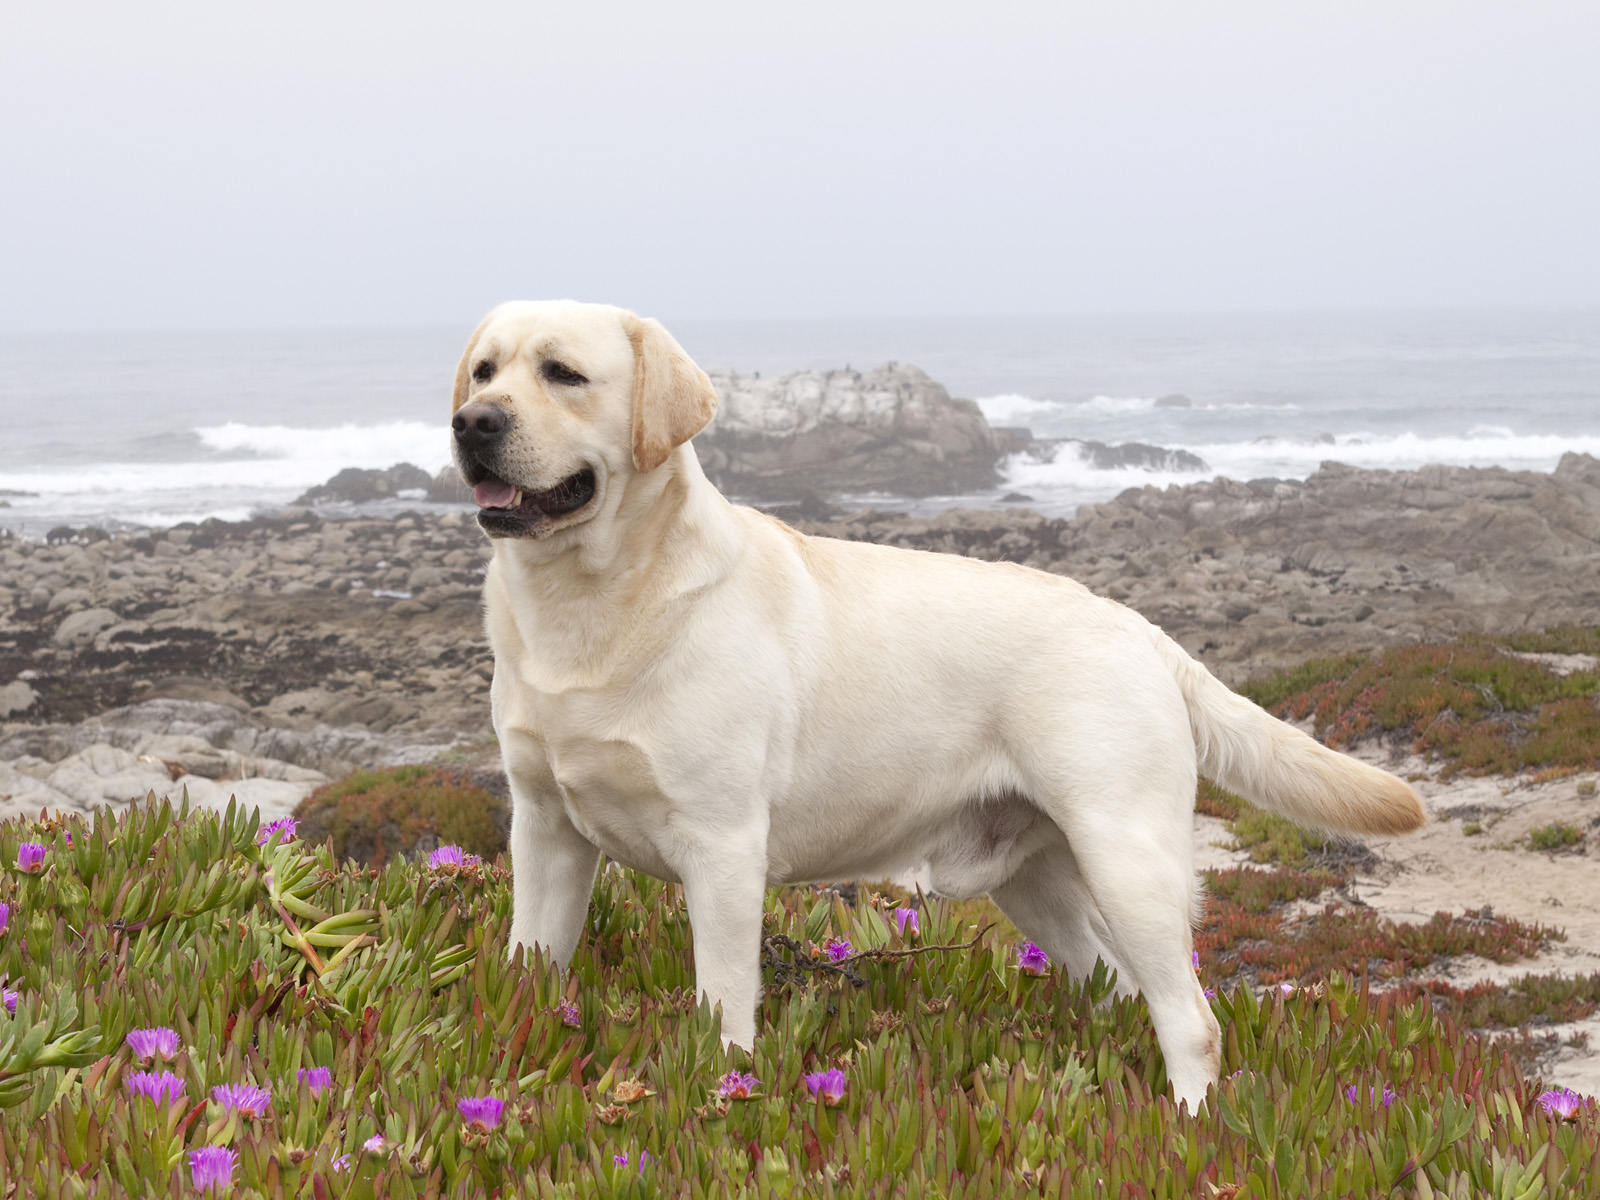 Yellow Labrador Retriever Among Ice Plant, California